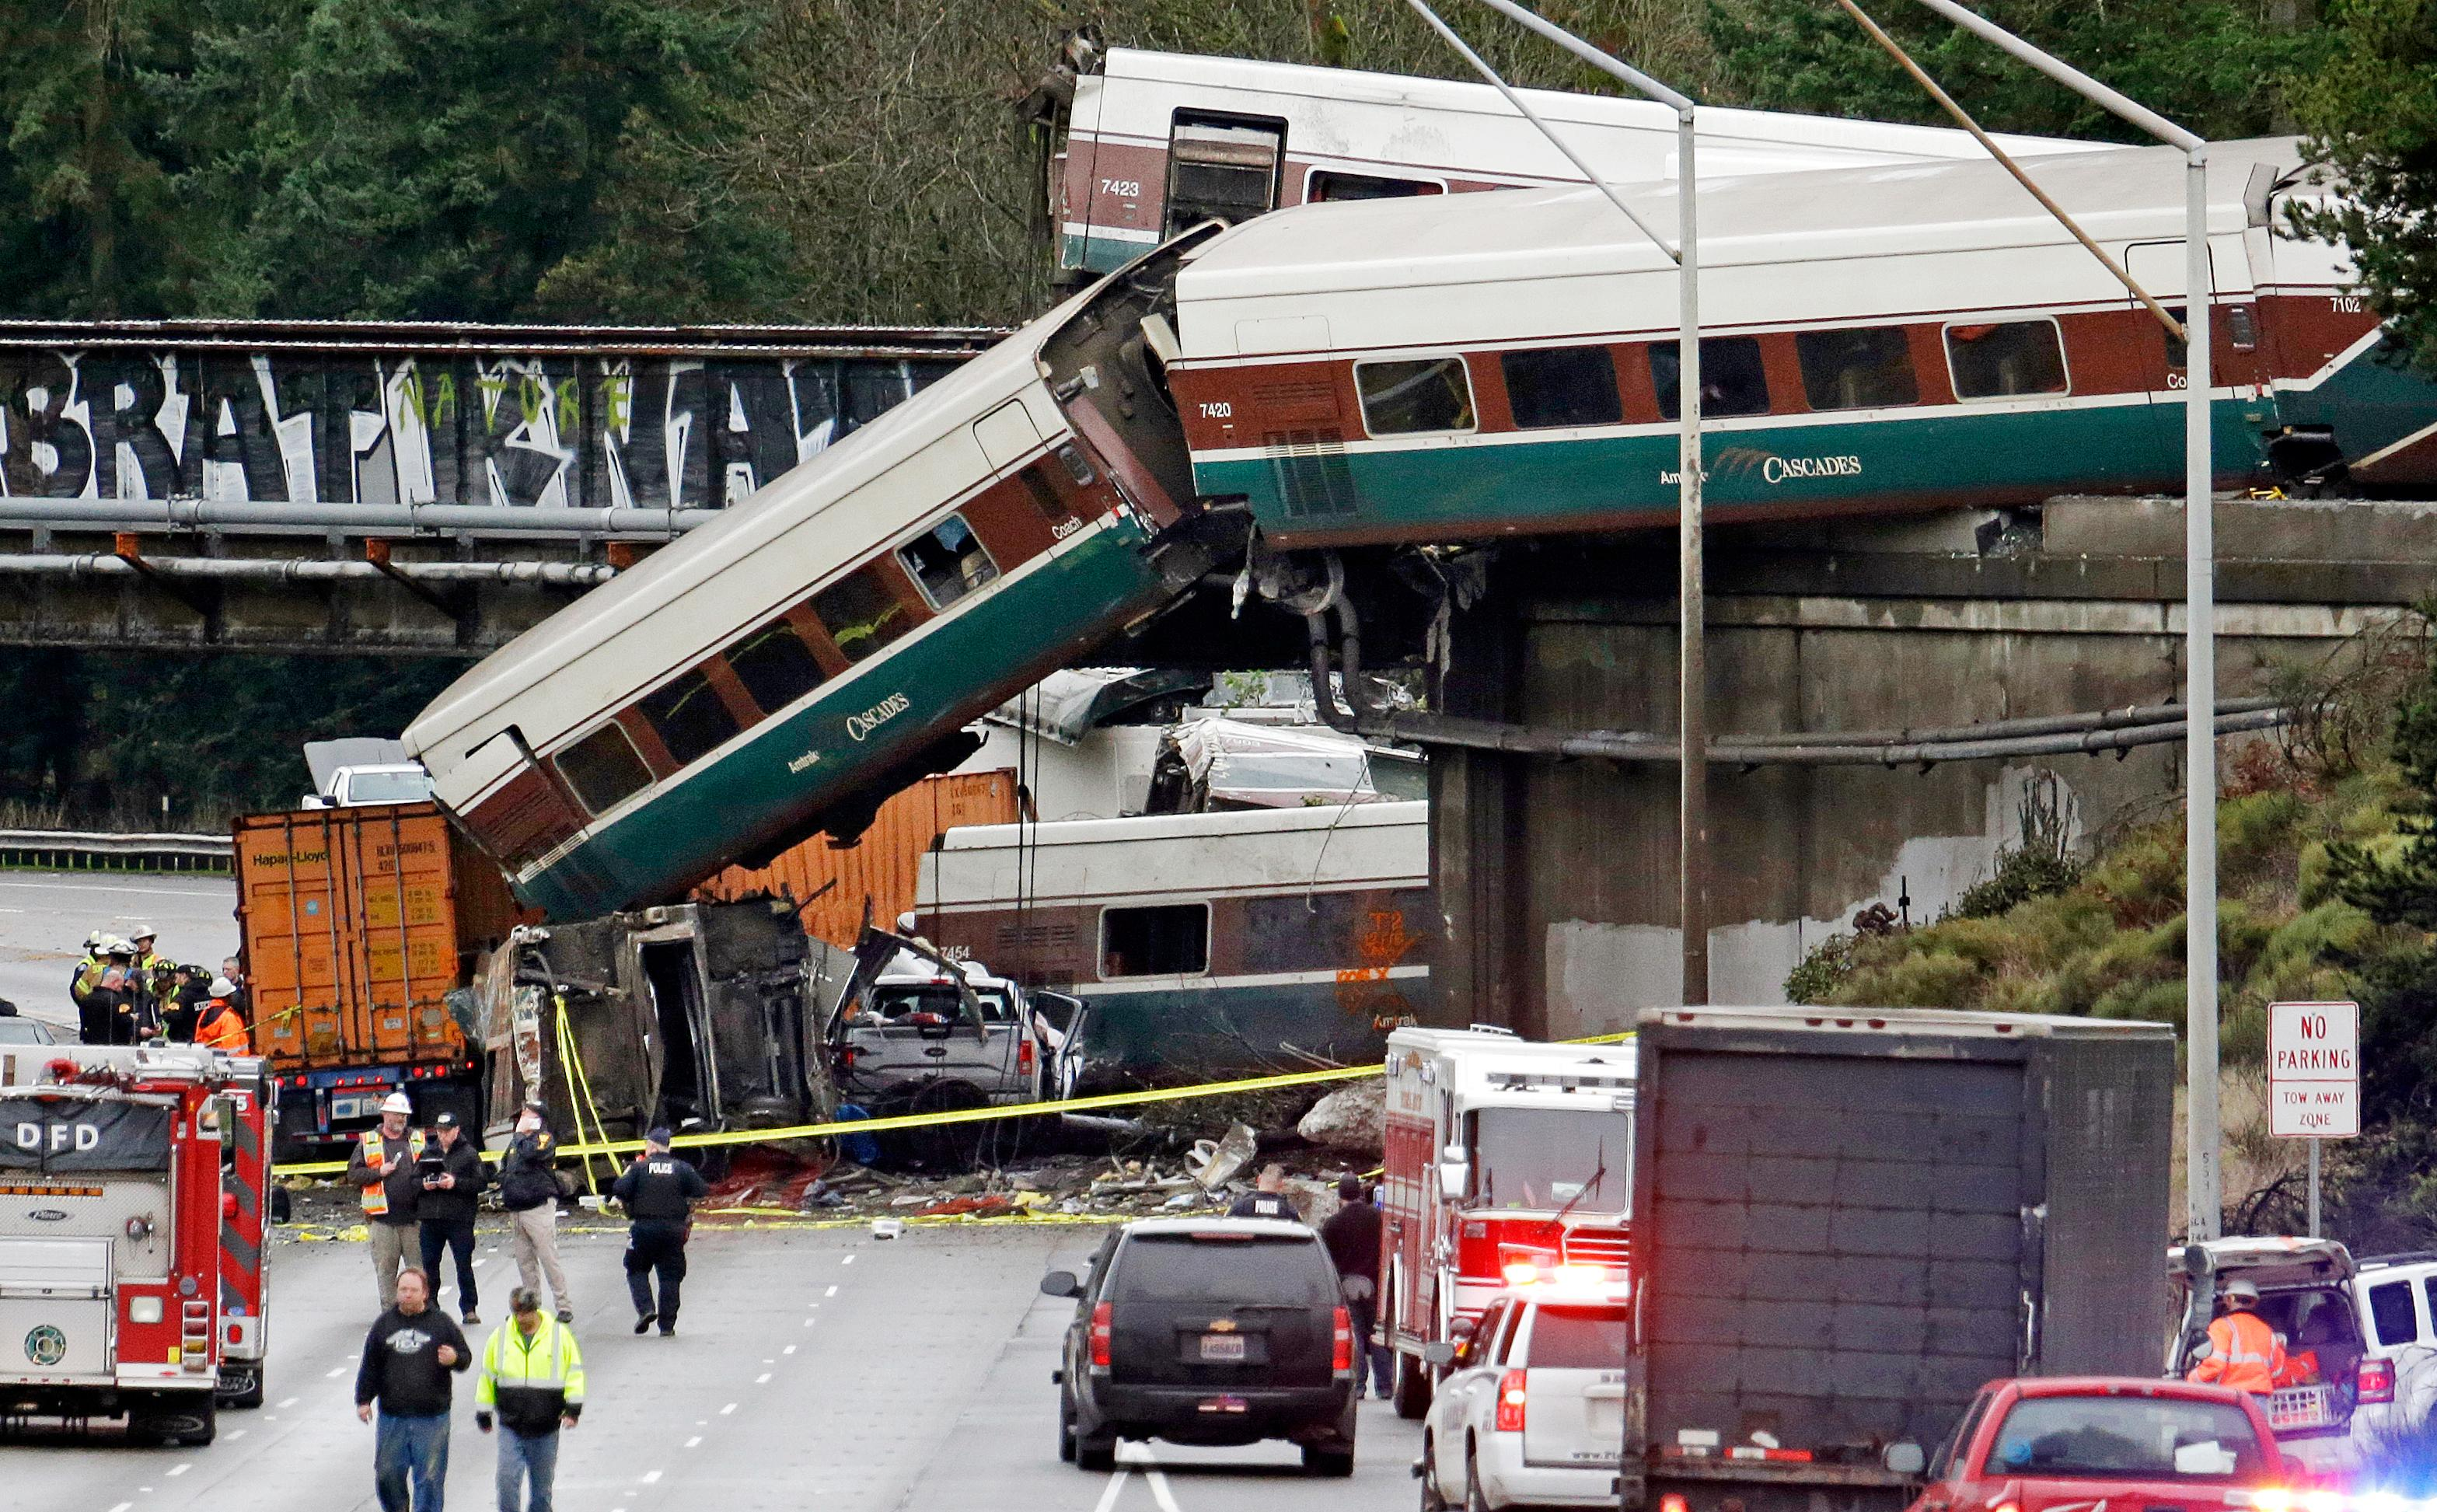 Cars from an Amtrak train lay spilled onto Interstate 5 below alongside smashed vehicles as some train cars remain on the tracks above Monday, Dec. 18, 2017, in DuPont, Wash. The Amtrak train making the first-ever run along a faster new route hurtled off the overpass Monday near Tacoma and spilled some of its cars onto the highway below, killing some people, authorities said. Seventy-eight passengers and five crew members were aboard when the train moving at more than 80 mph derailed about 40 miles south of Seattle before 8 a.m., Amtrak said. (AP Photo/Elaine Thompson)